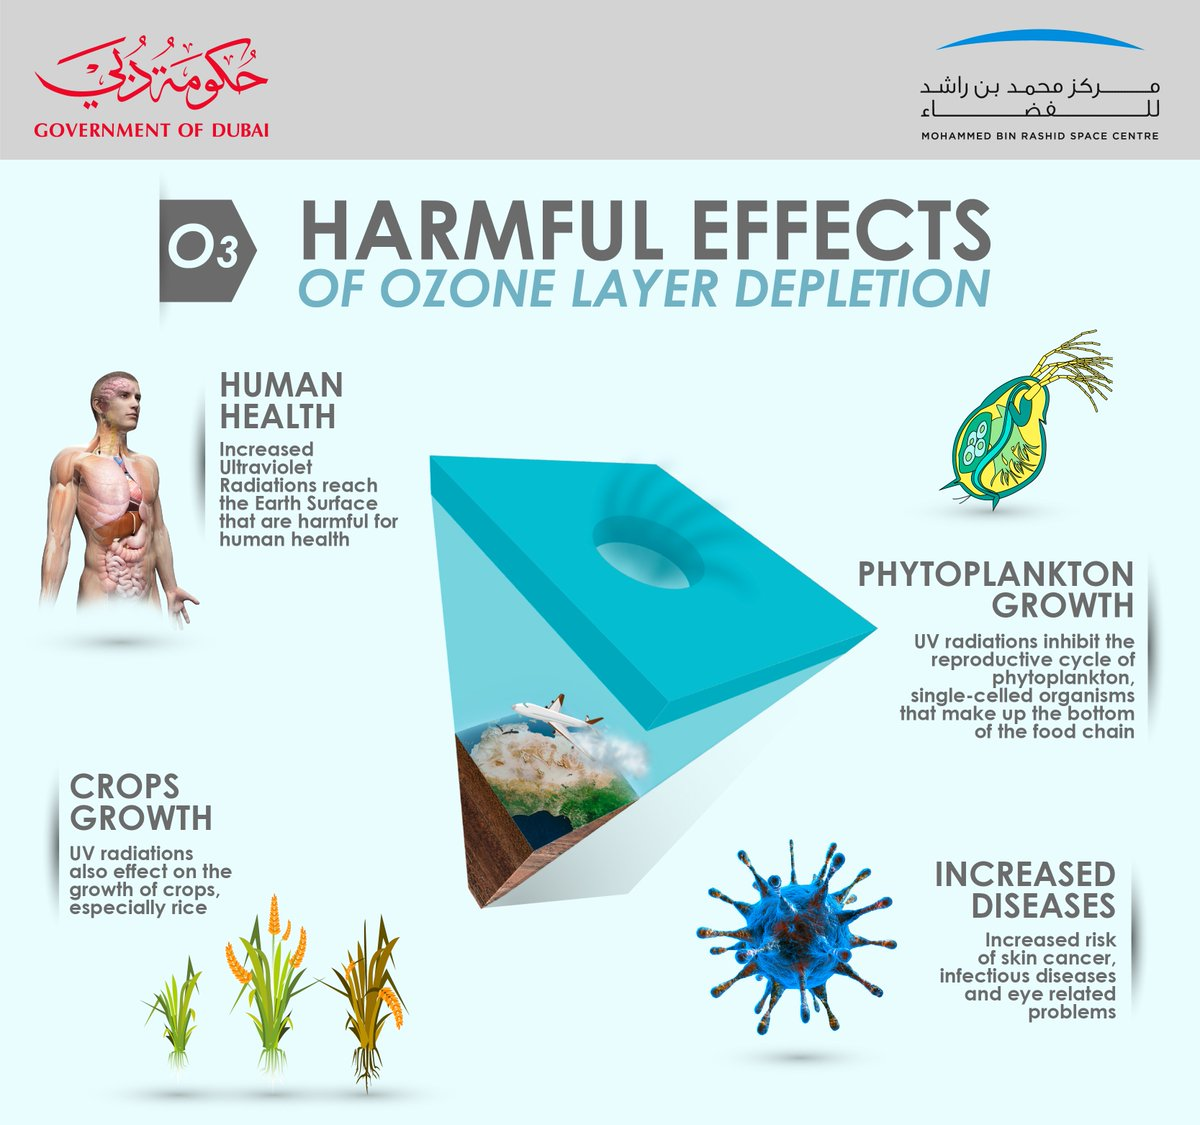 """MBR Space Centre on Twitter: """"#OzoneDay : Here is how #ozone layer  depletion is affecting our lives! #humanhealth #food #Dubai #UAE… """""""